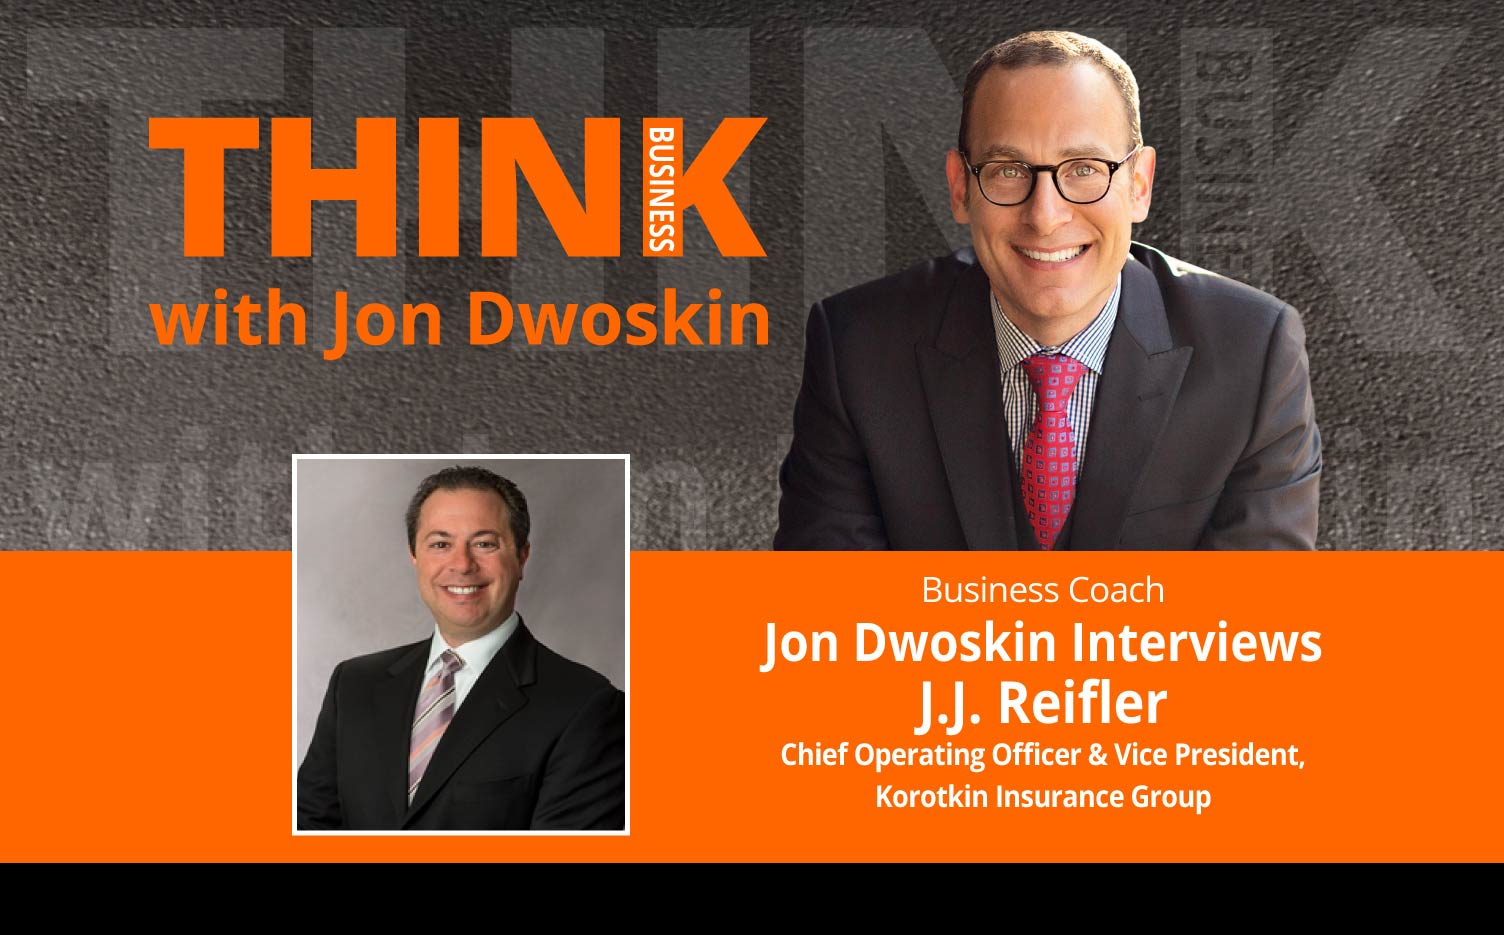 THINK Business Podcast: Jon Dwoskin Interviews J.J. Reifler, Chief Operating Officer & Vice President, Korotkin Insurance Group